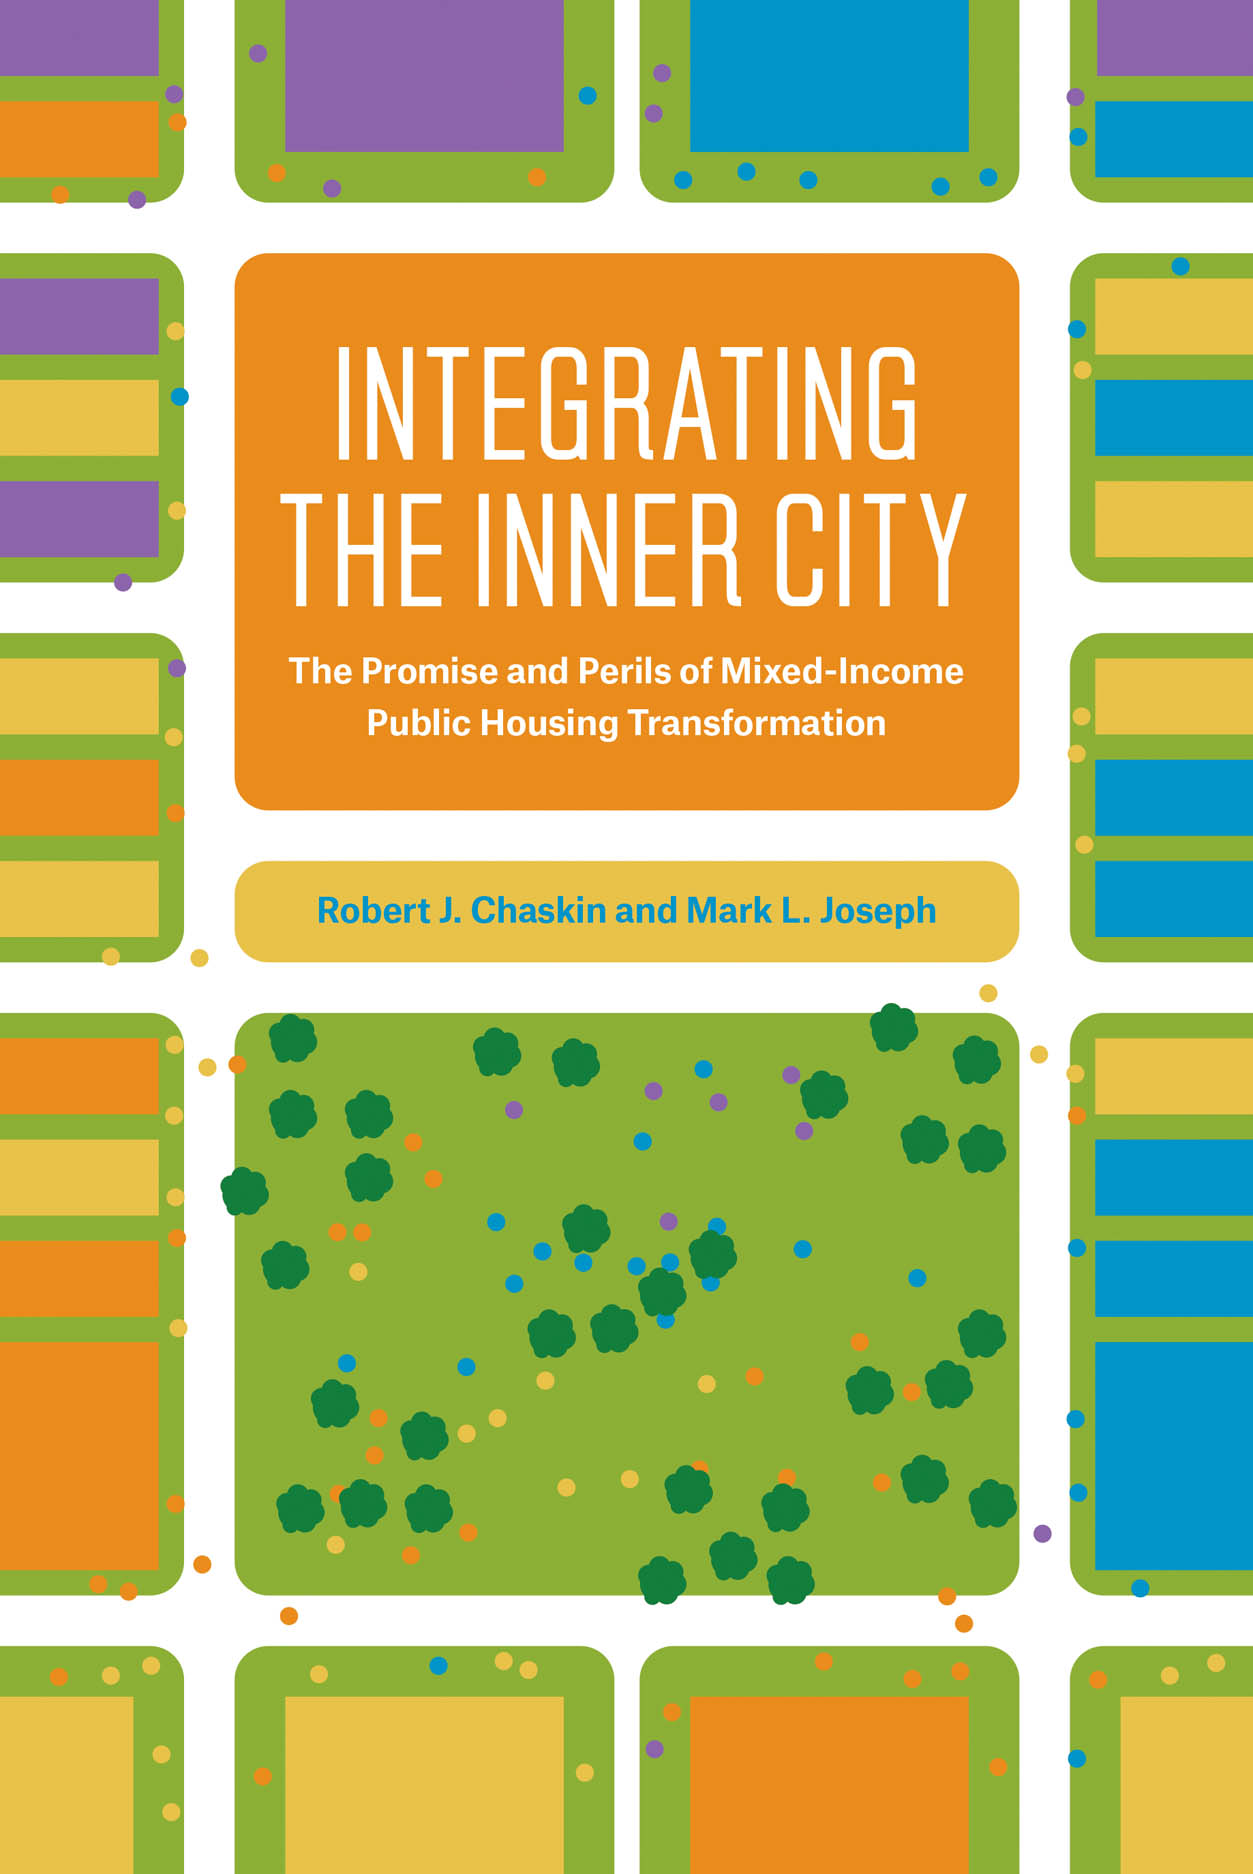 Integrating the Inner City: The Promise and Perils of Mixed-Income Public Housing Transformation